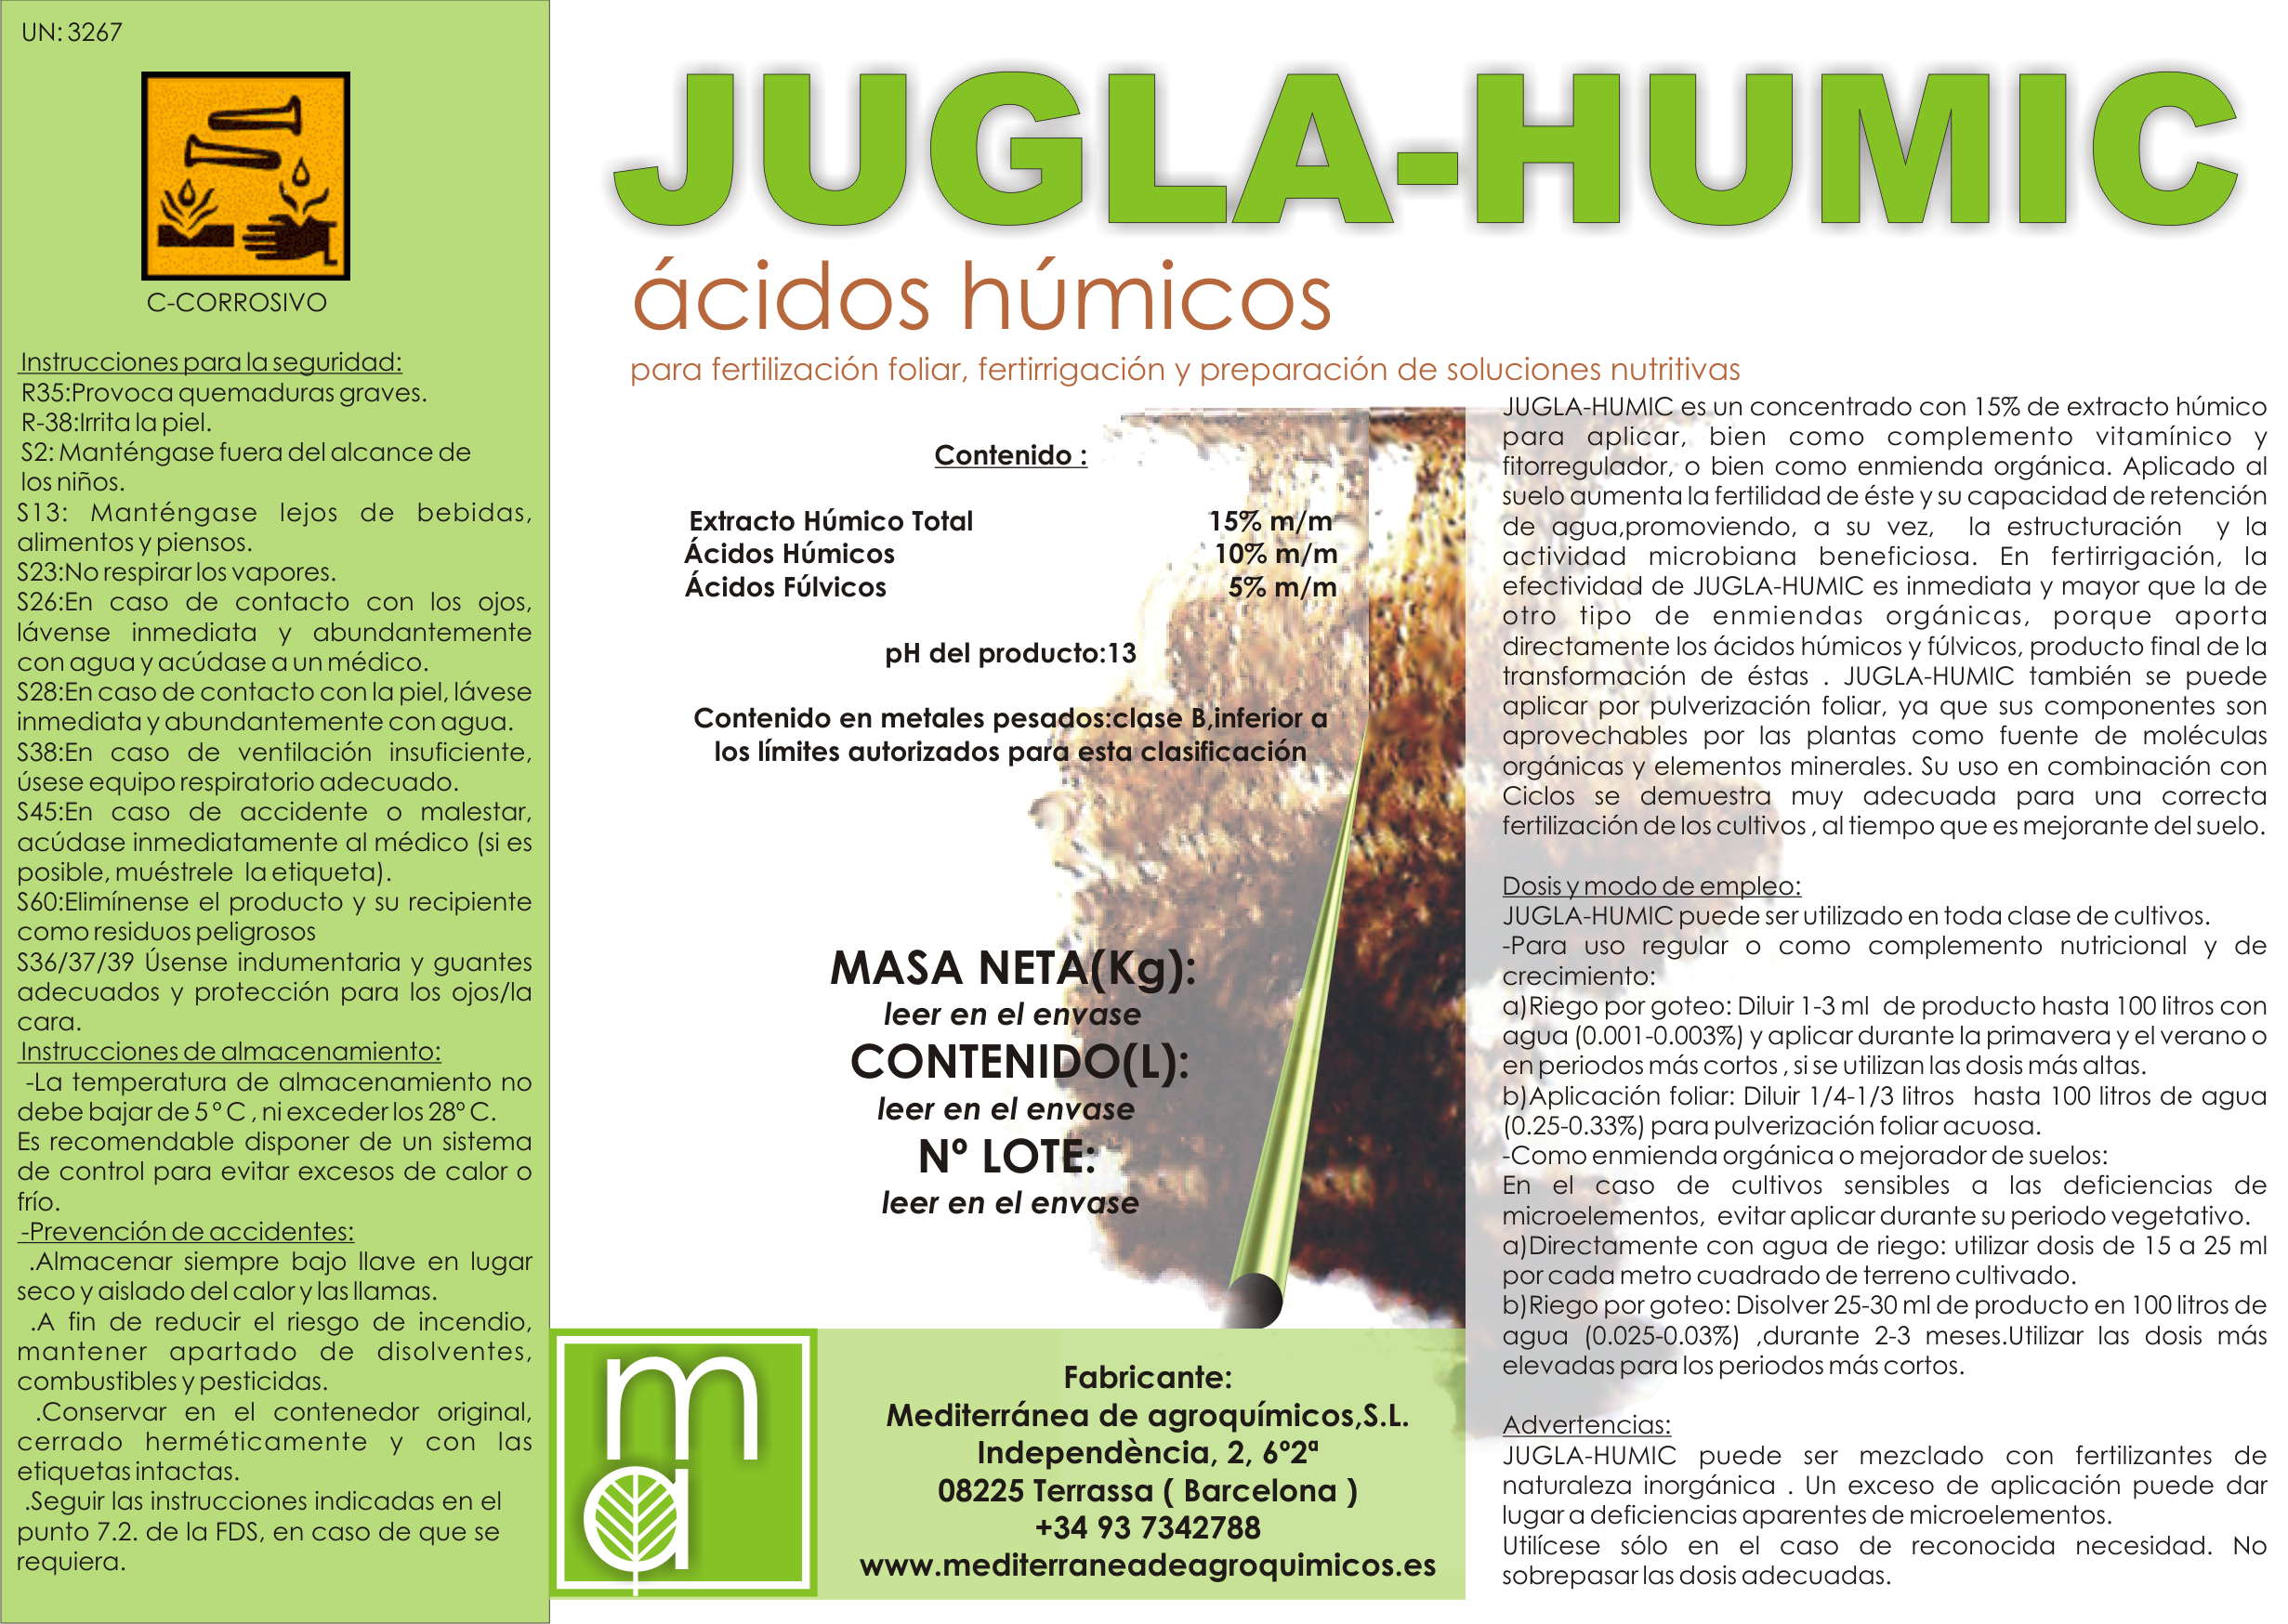 JUGLA-HUMIC/Acidos húmicos